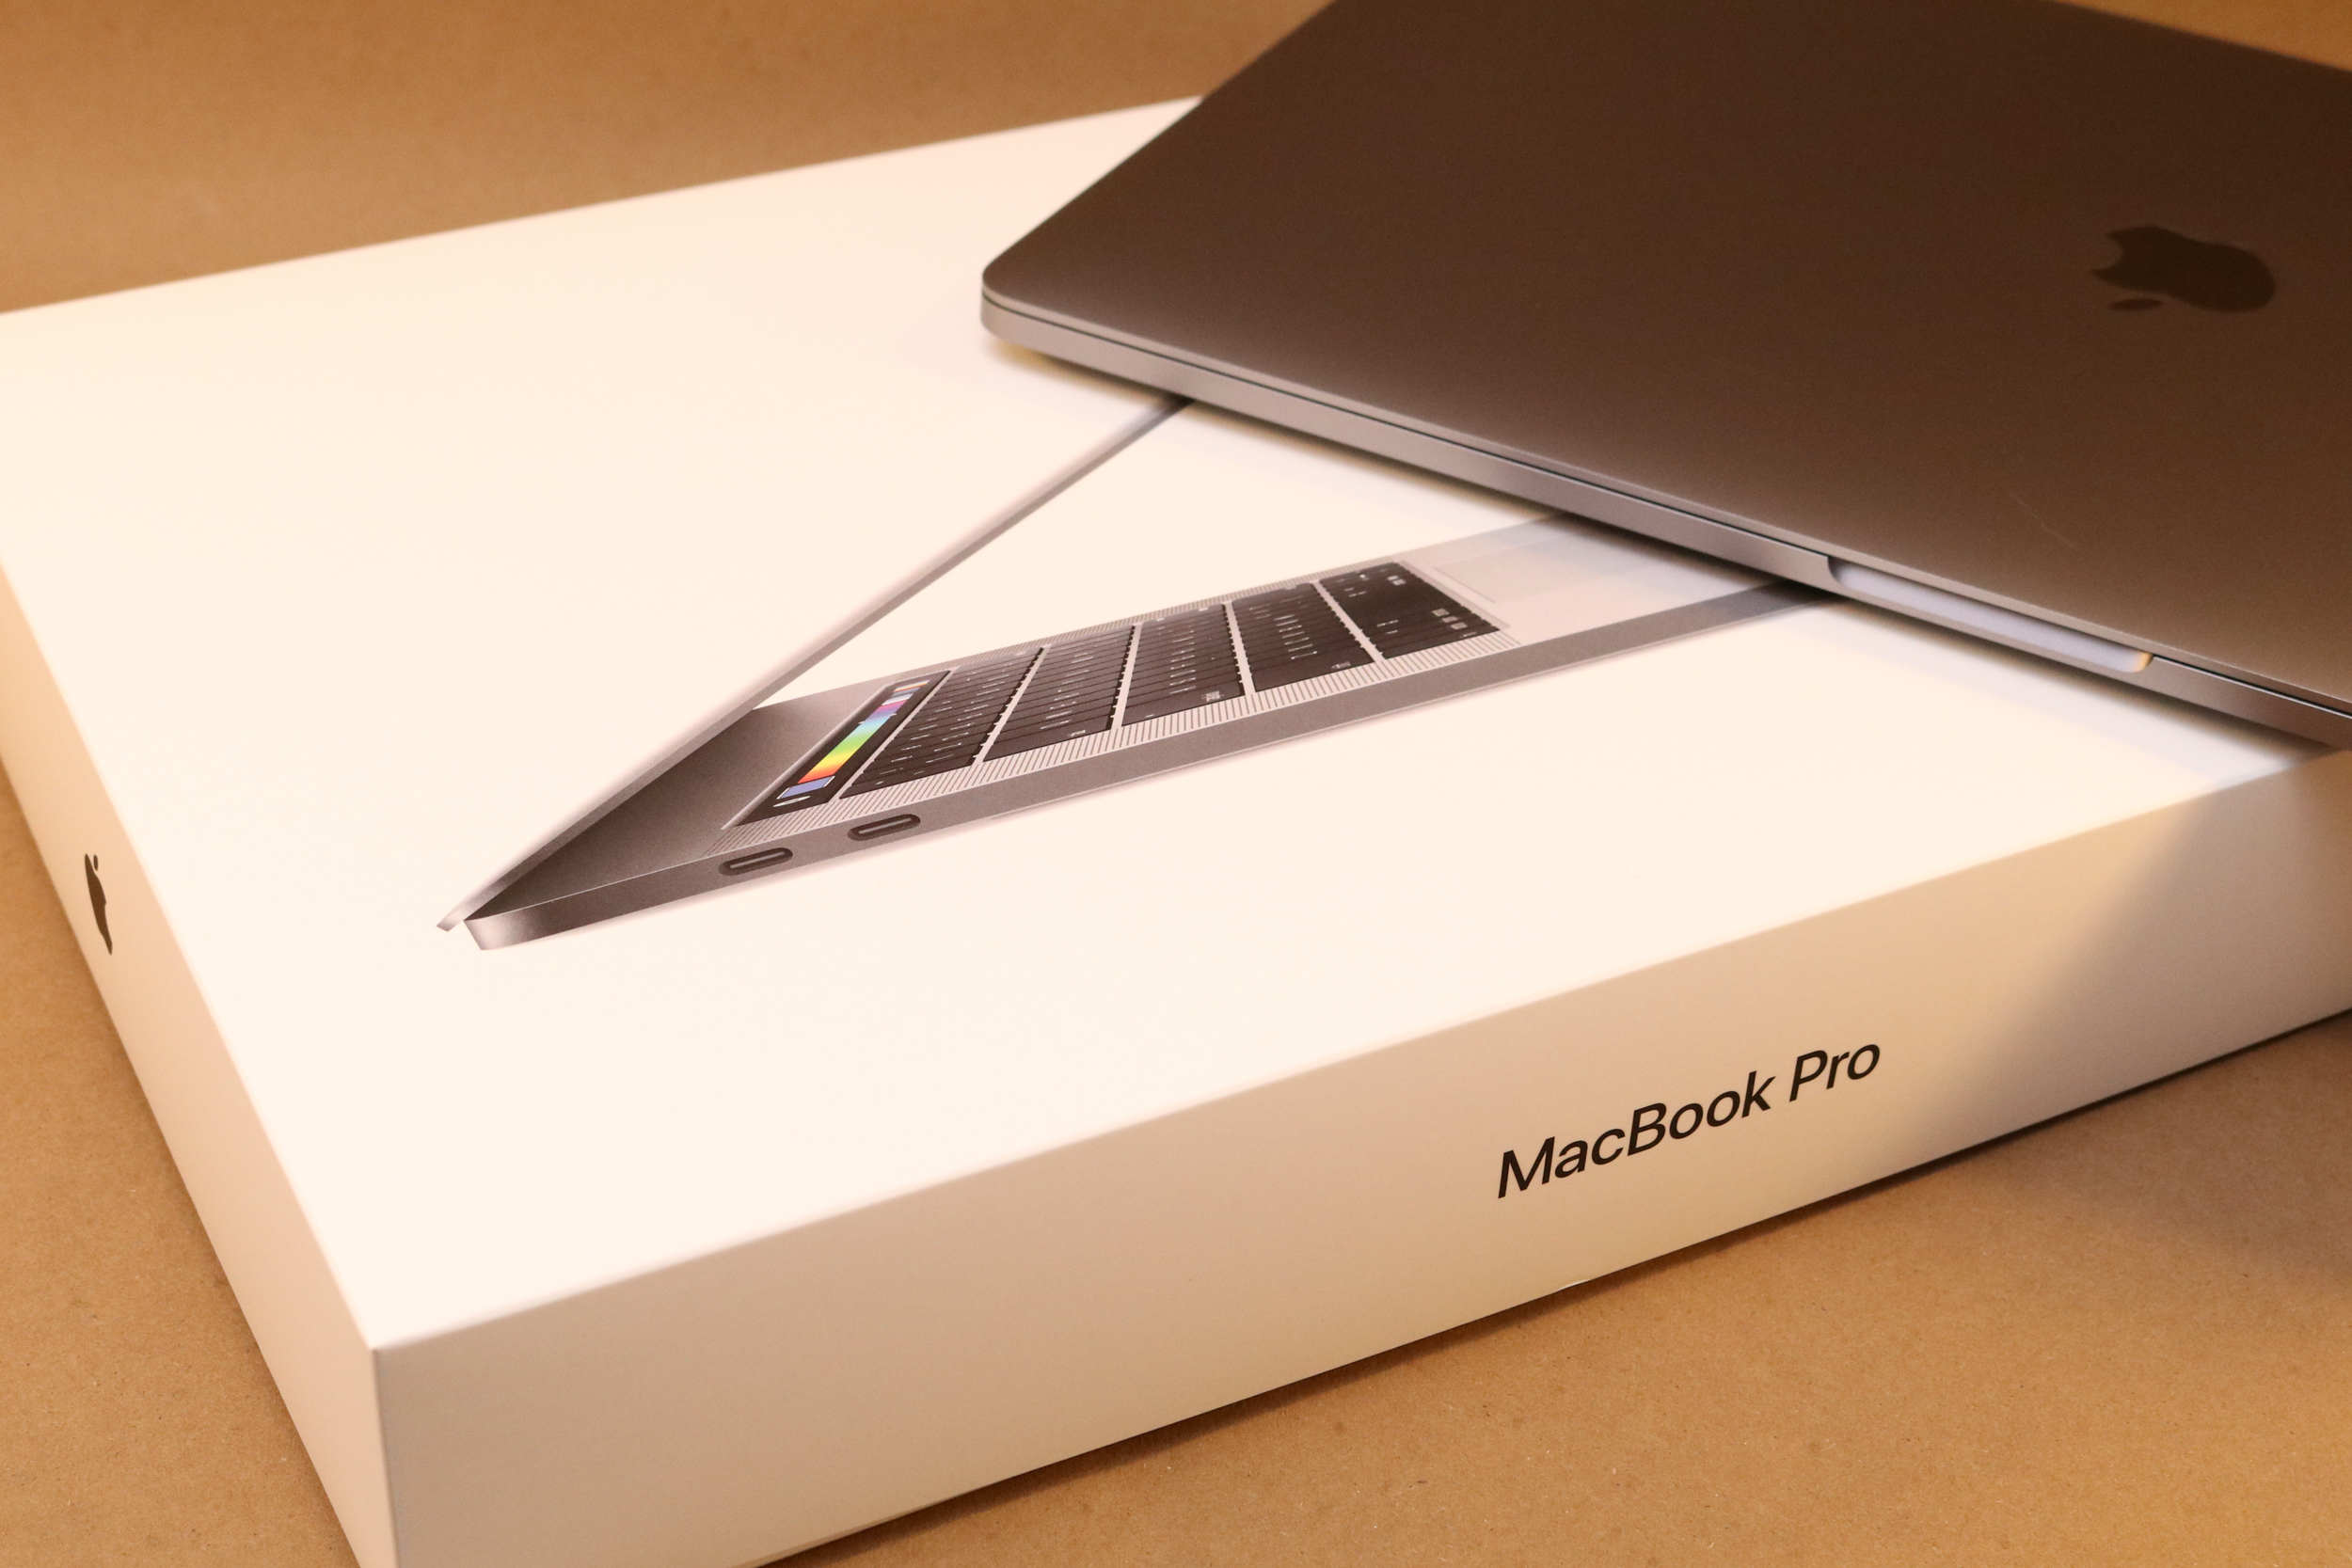 The MacBook Pro box w/ laptop